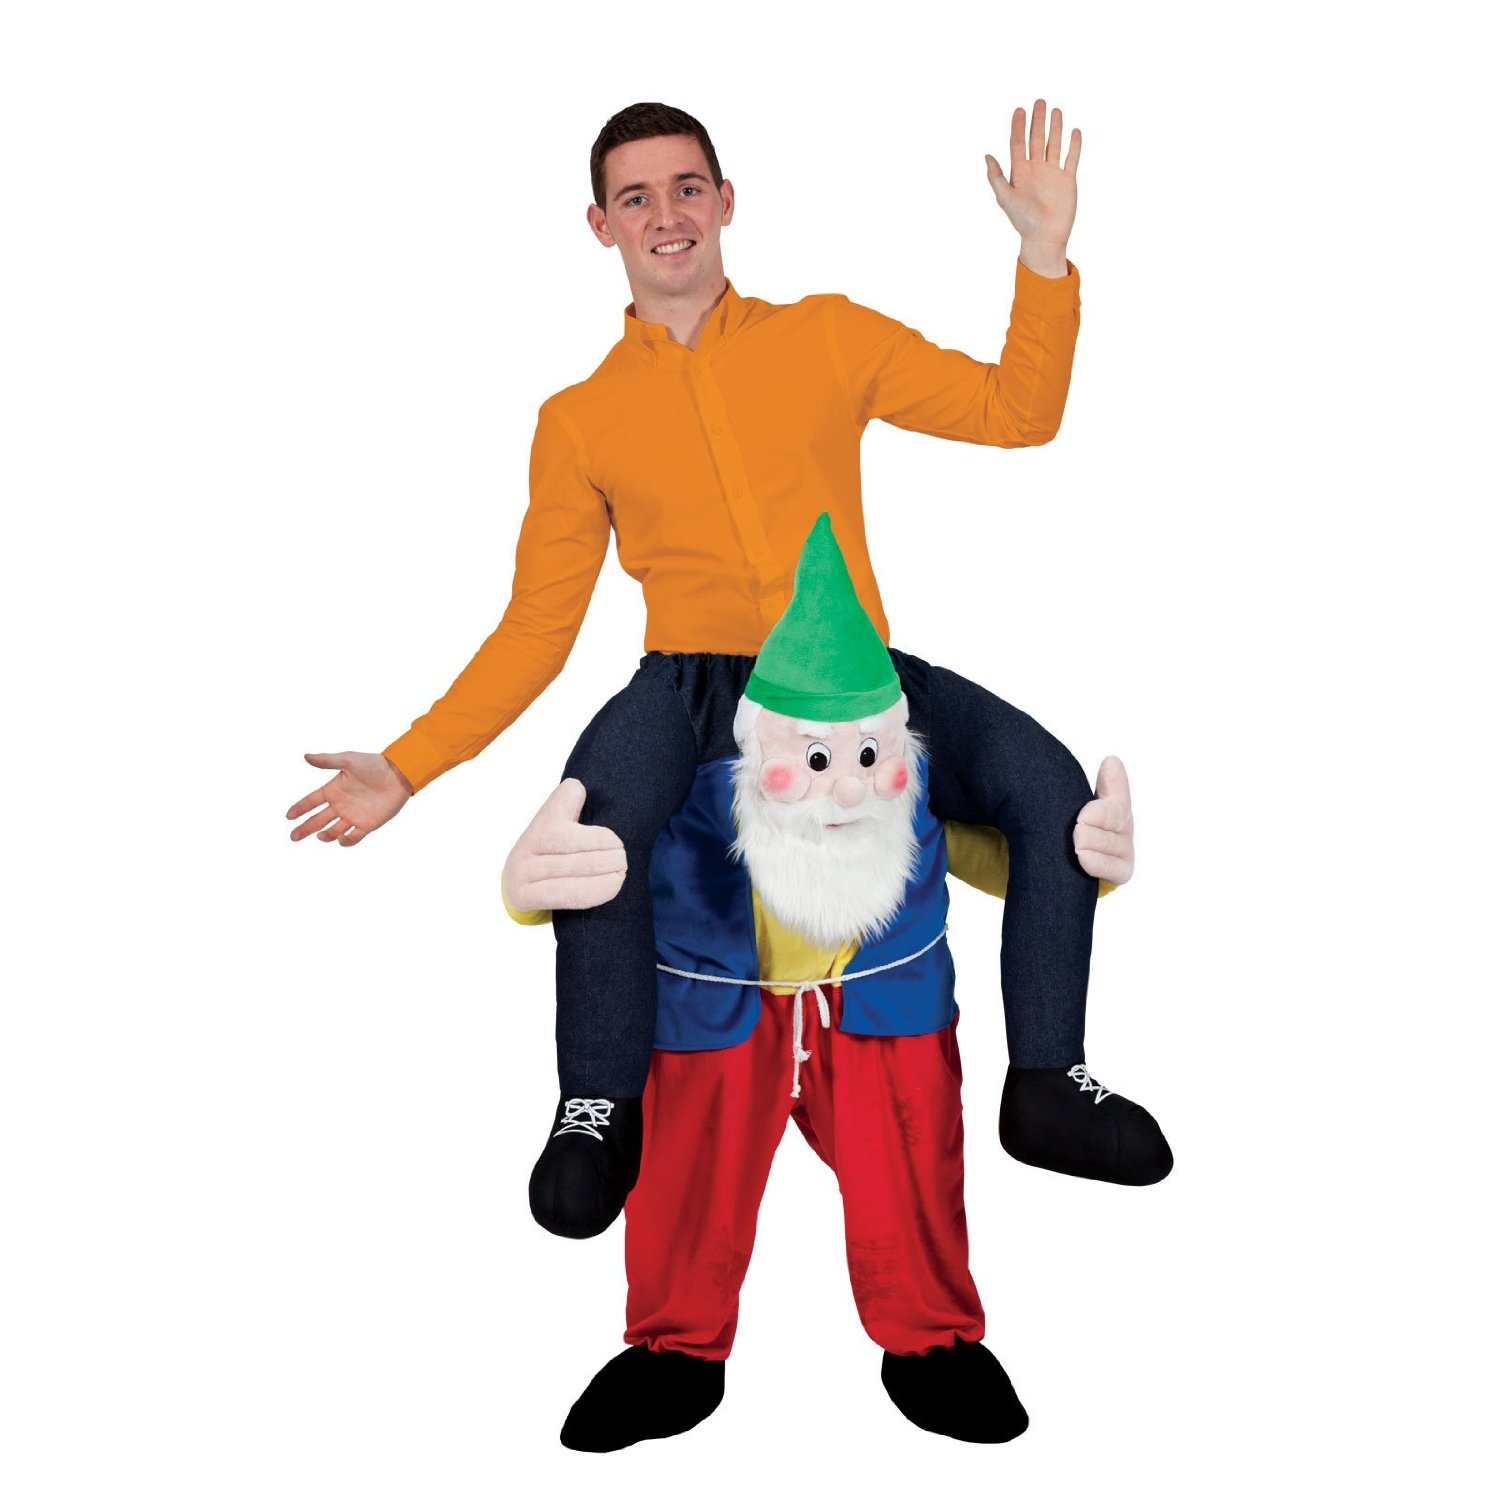 Garden Gnome costumes for Men - The Home of Gnome